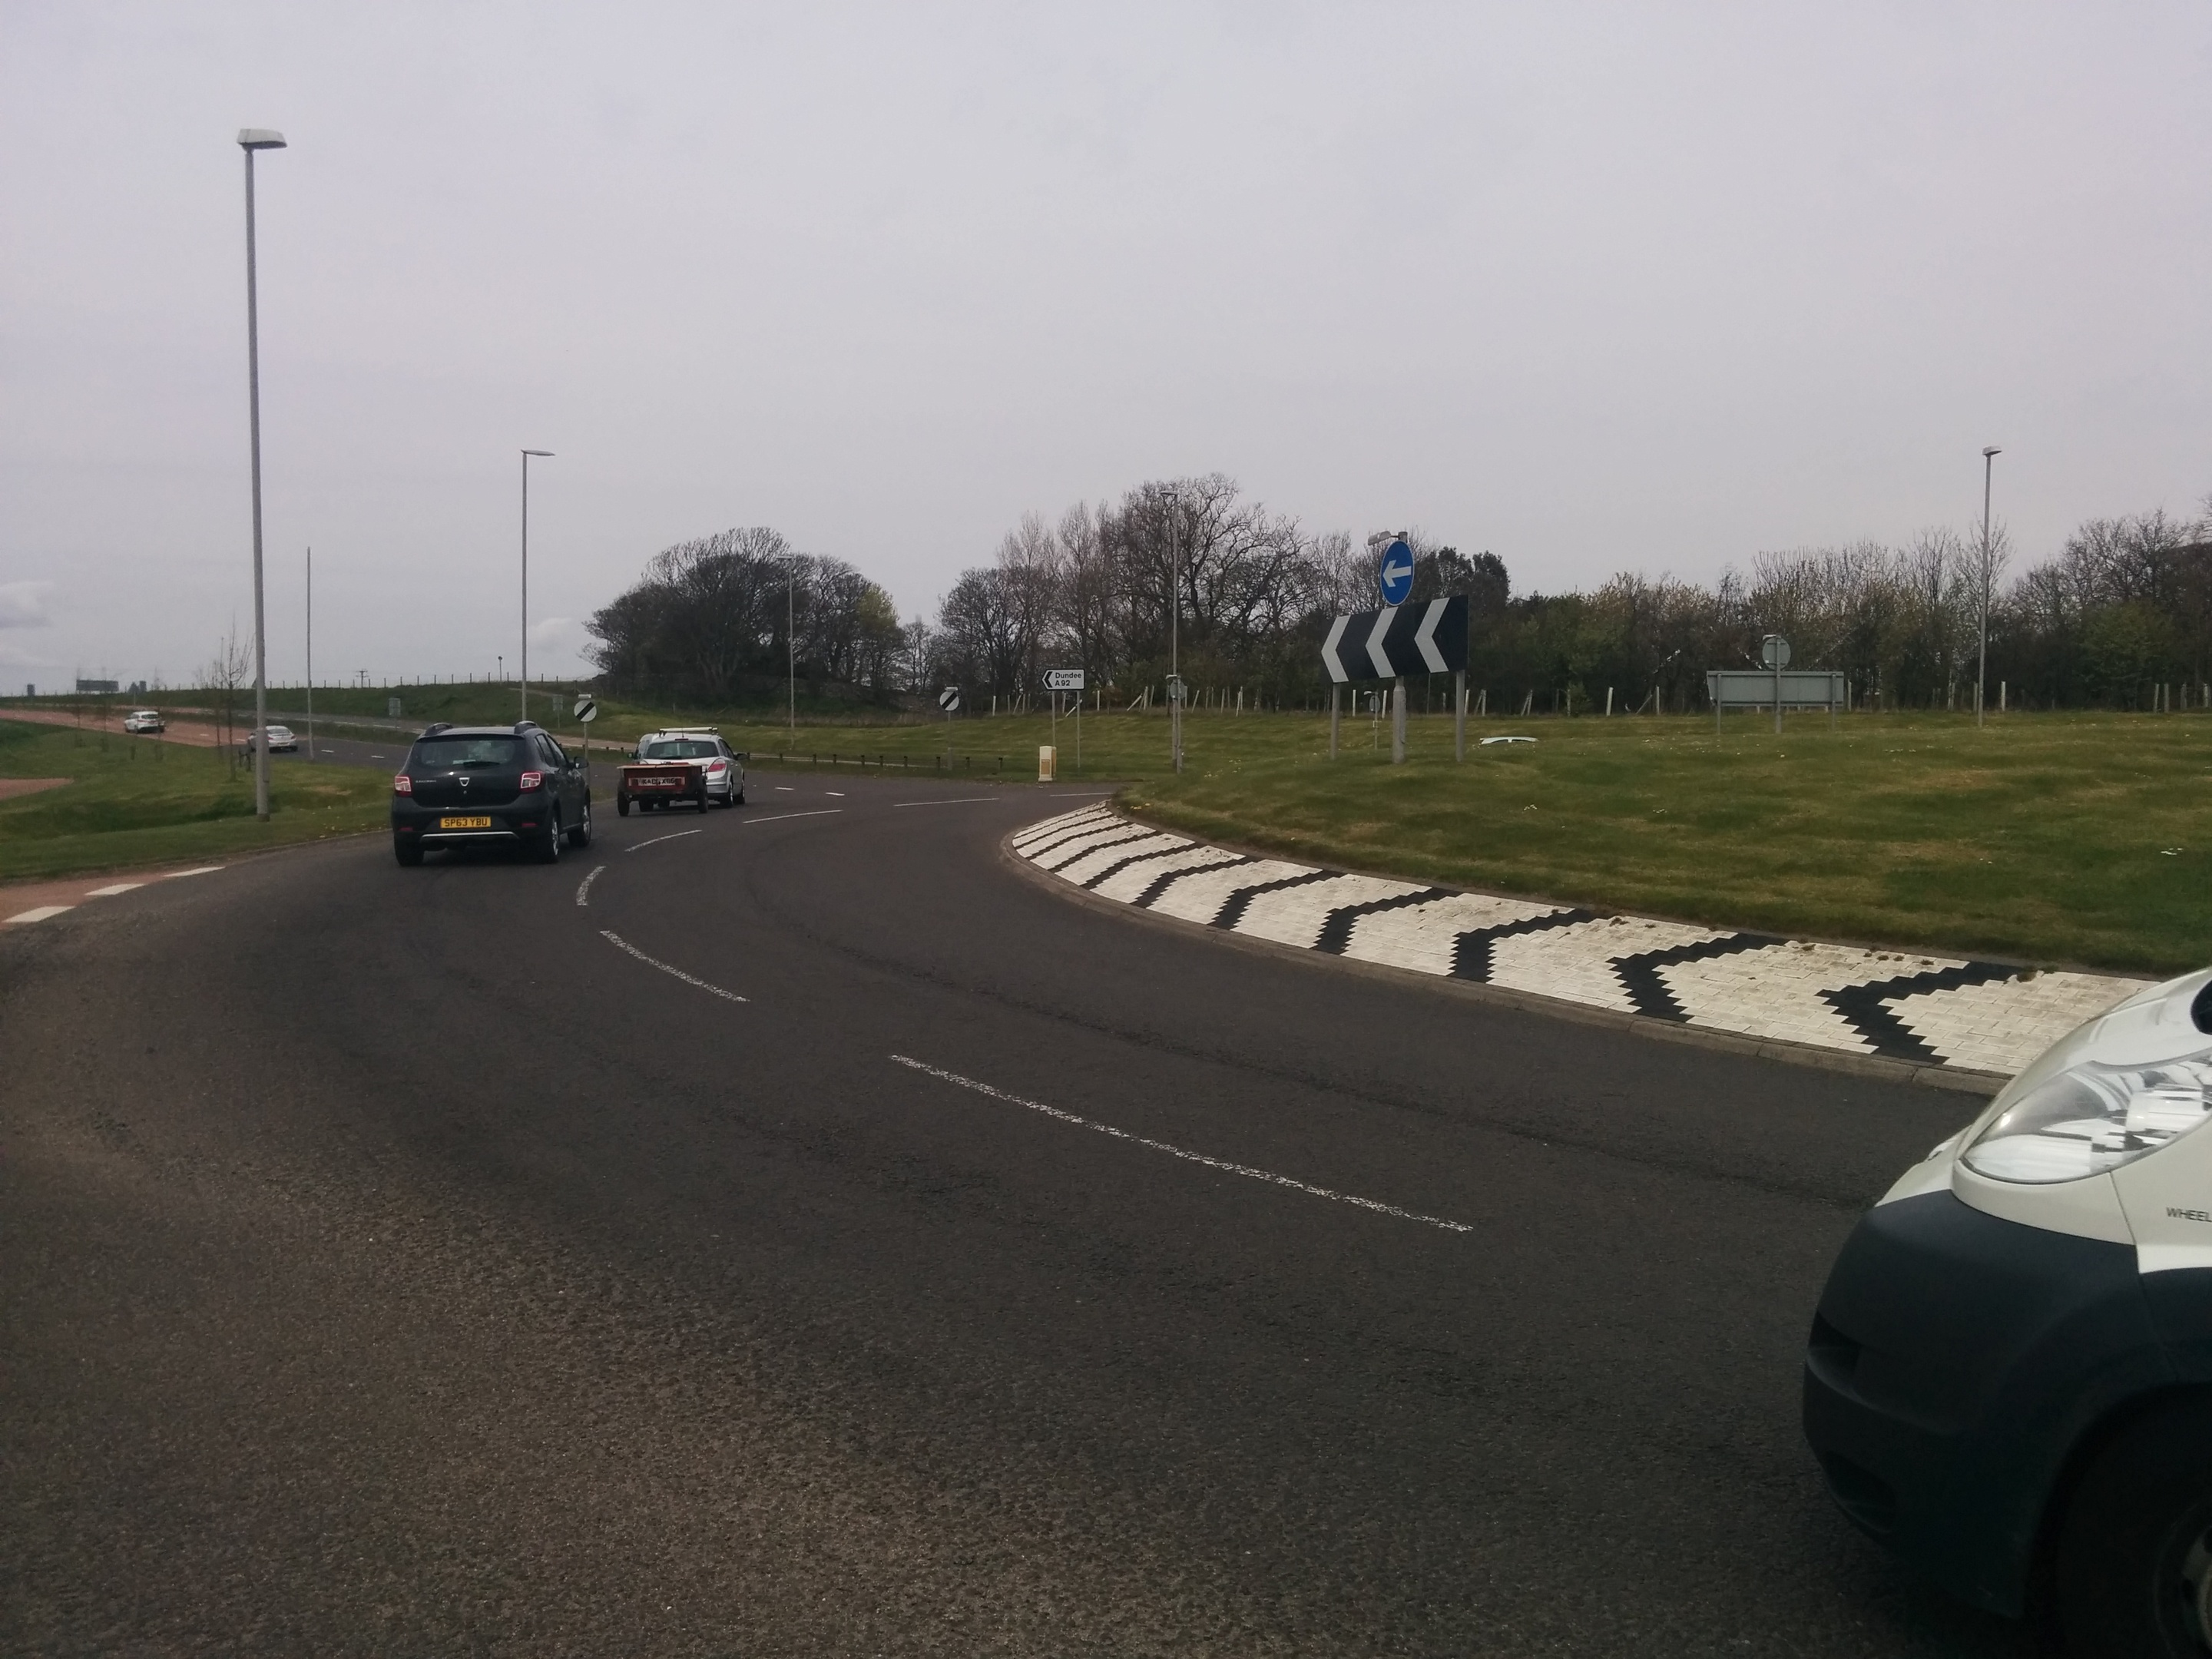 Elliot roundabout on the outskirts of Arbroath.